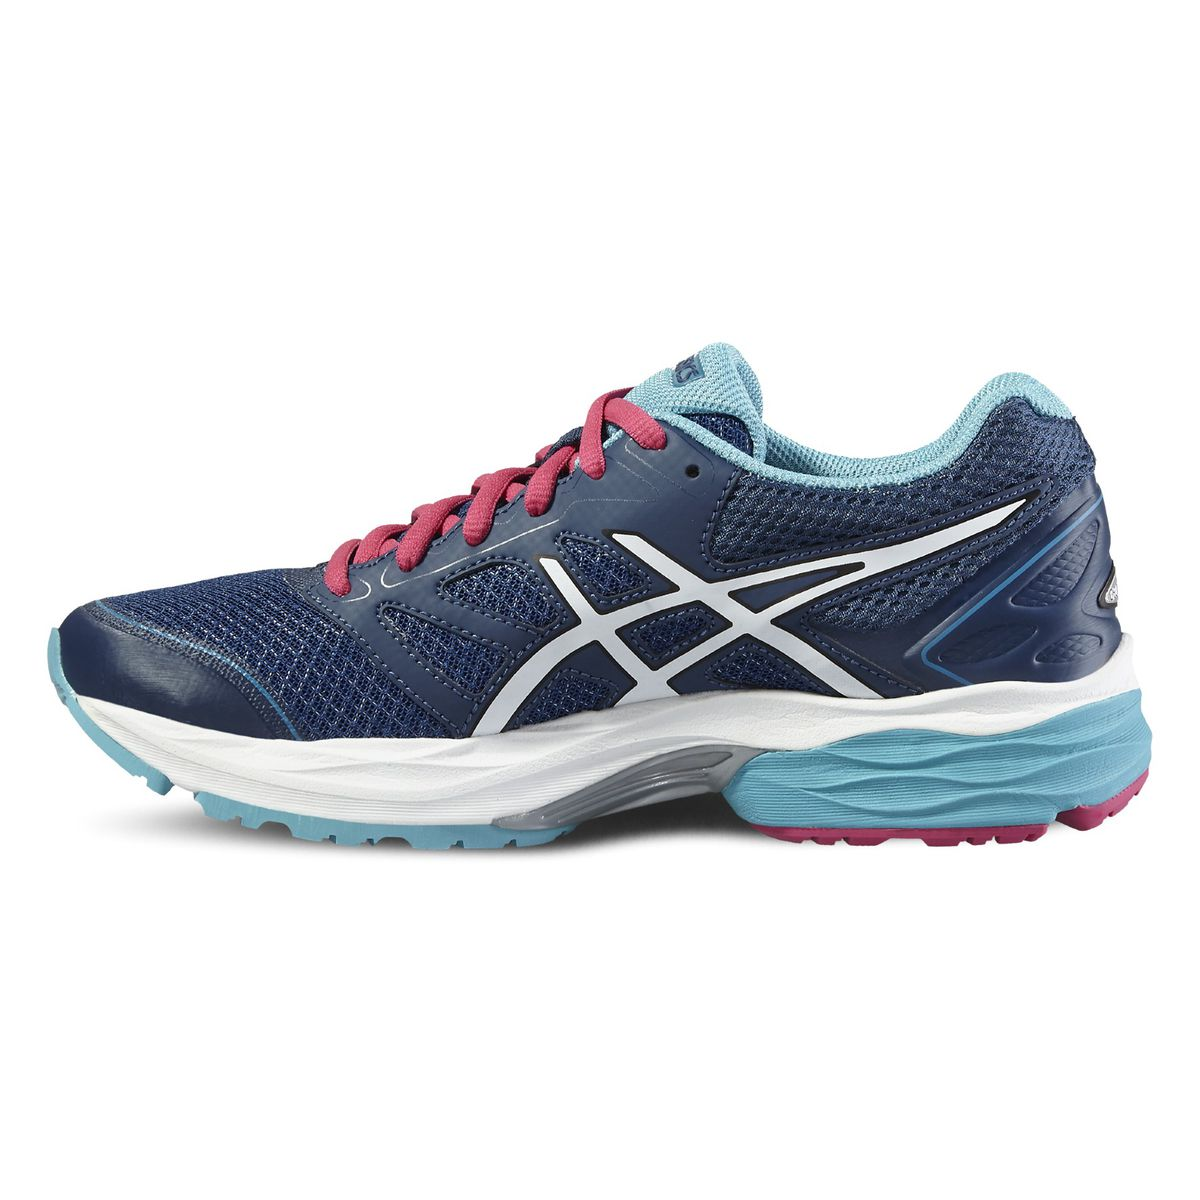 Women\u0027s Asics Gel-Pulse 8 Running Shoes